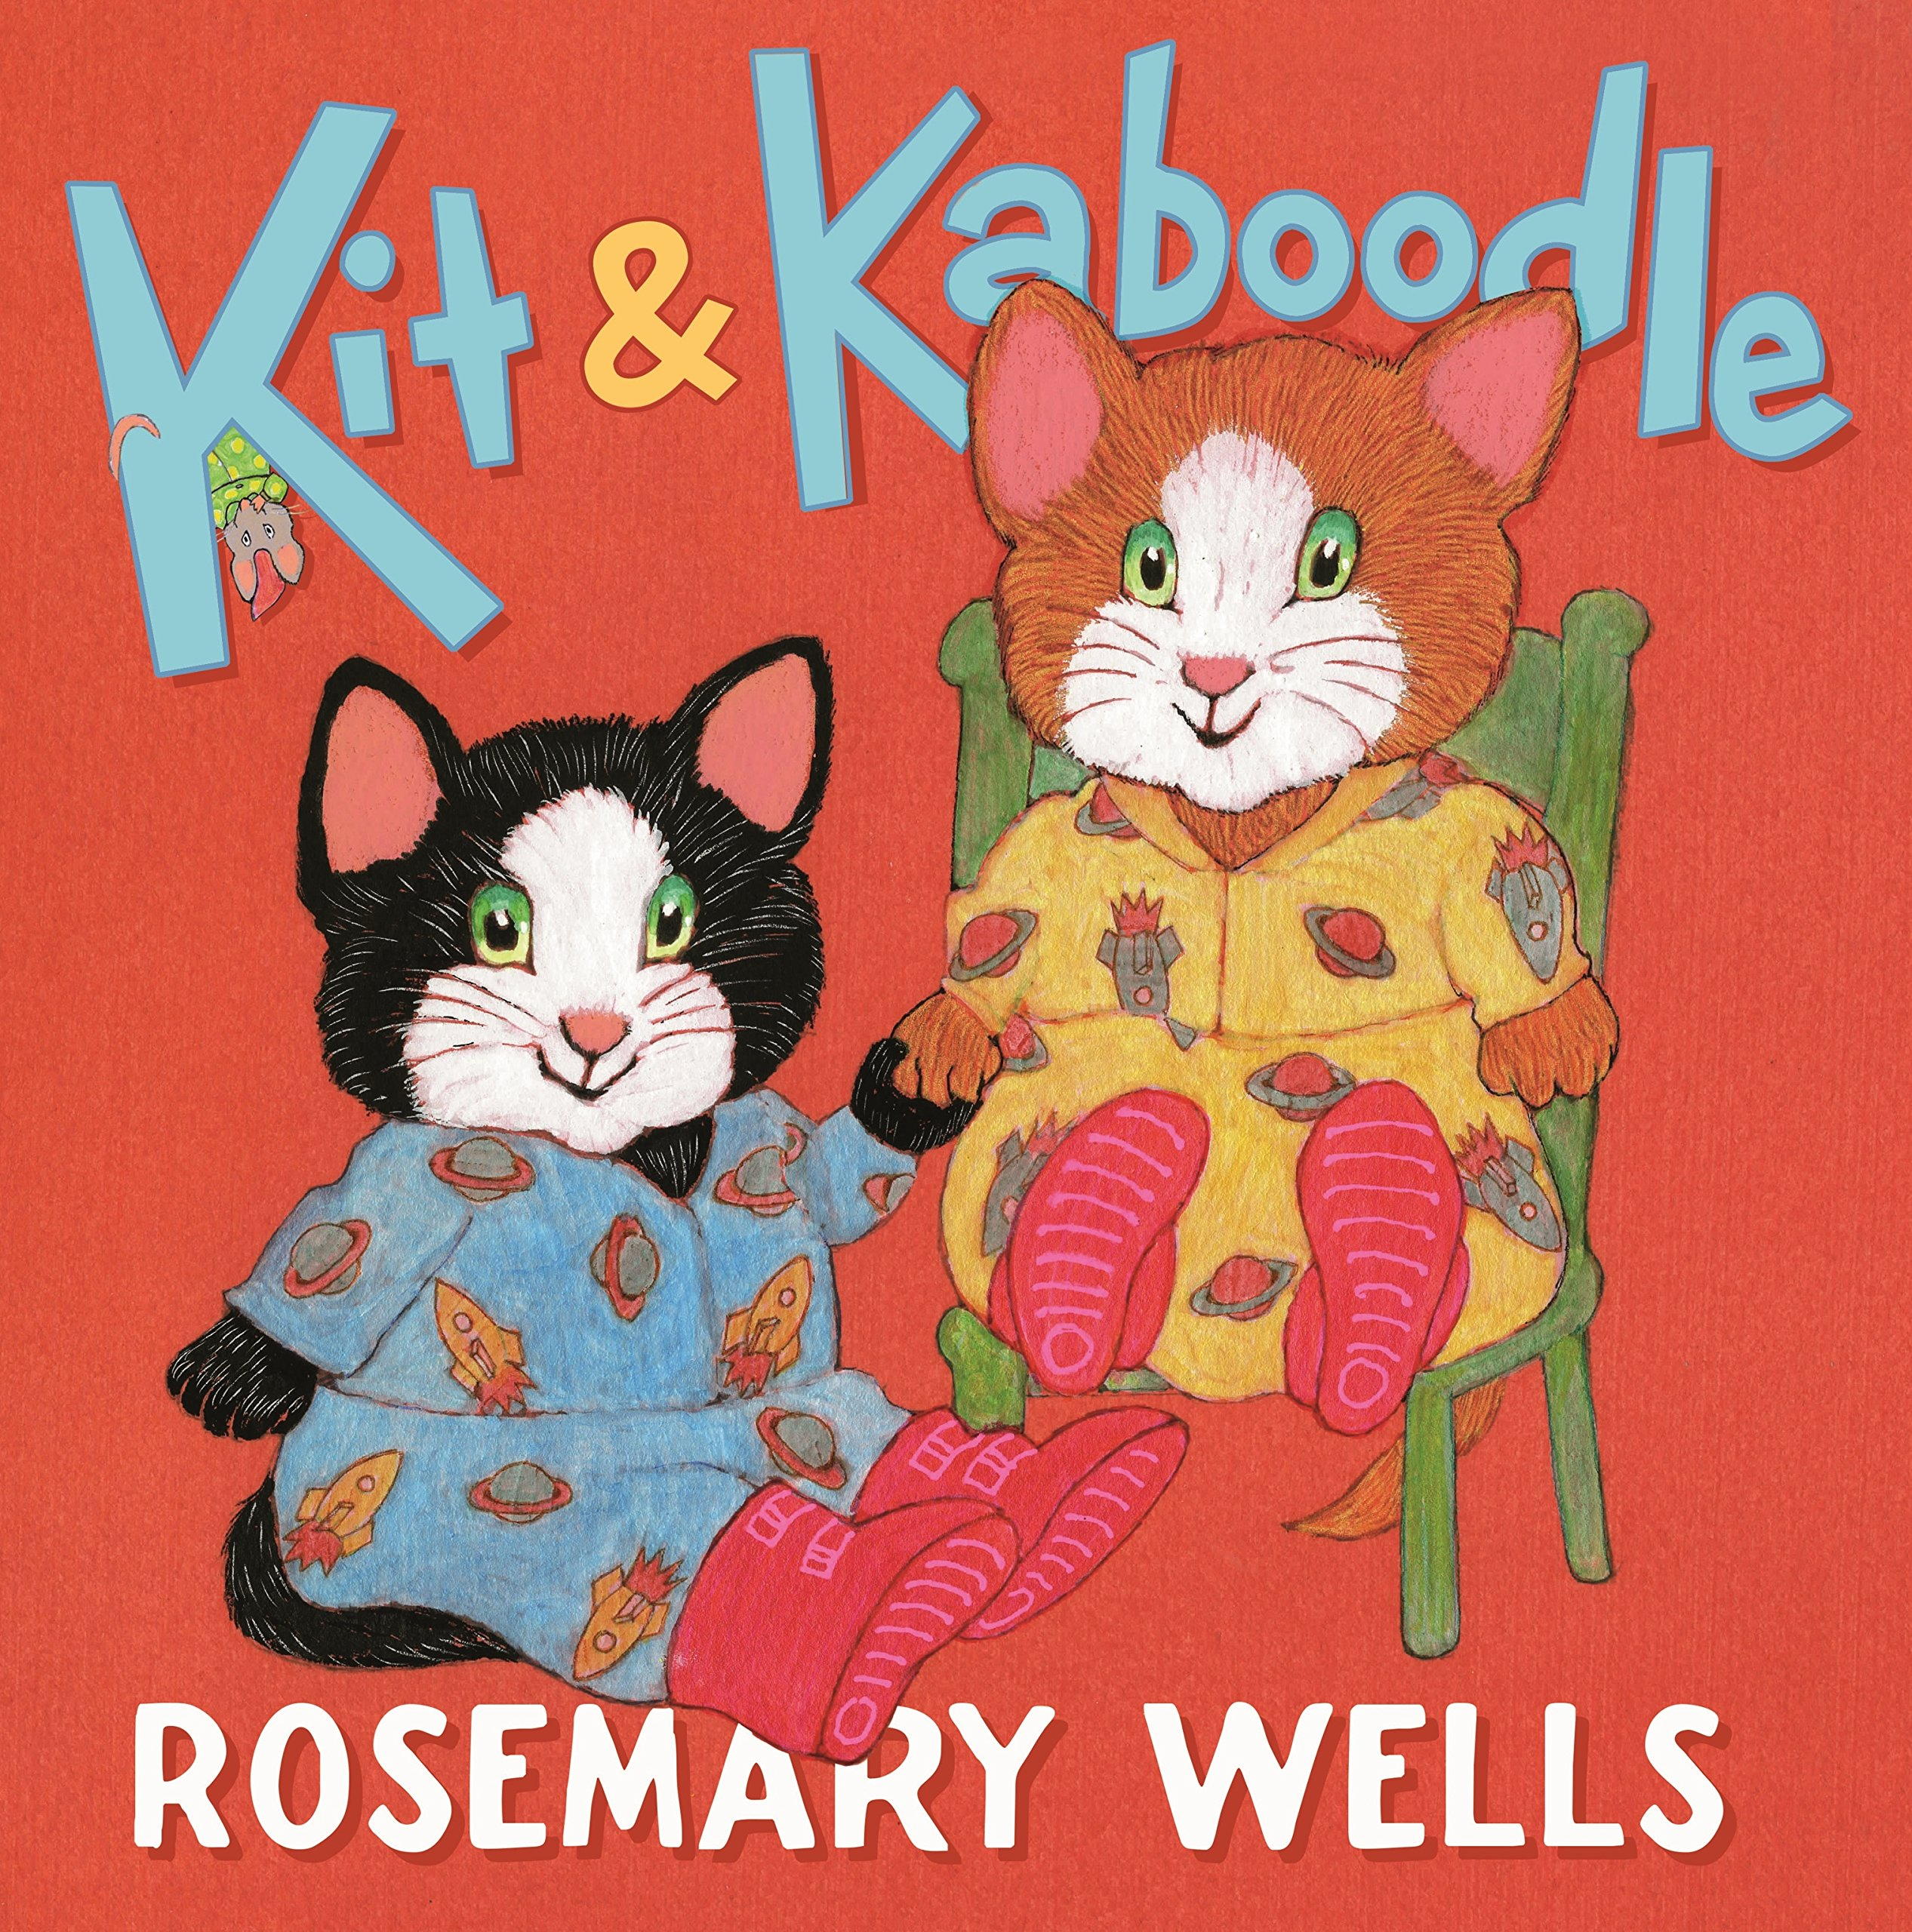 Kit & Kaboodle: Rosemary Wells: 9781250130754: Amazon.com: Books